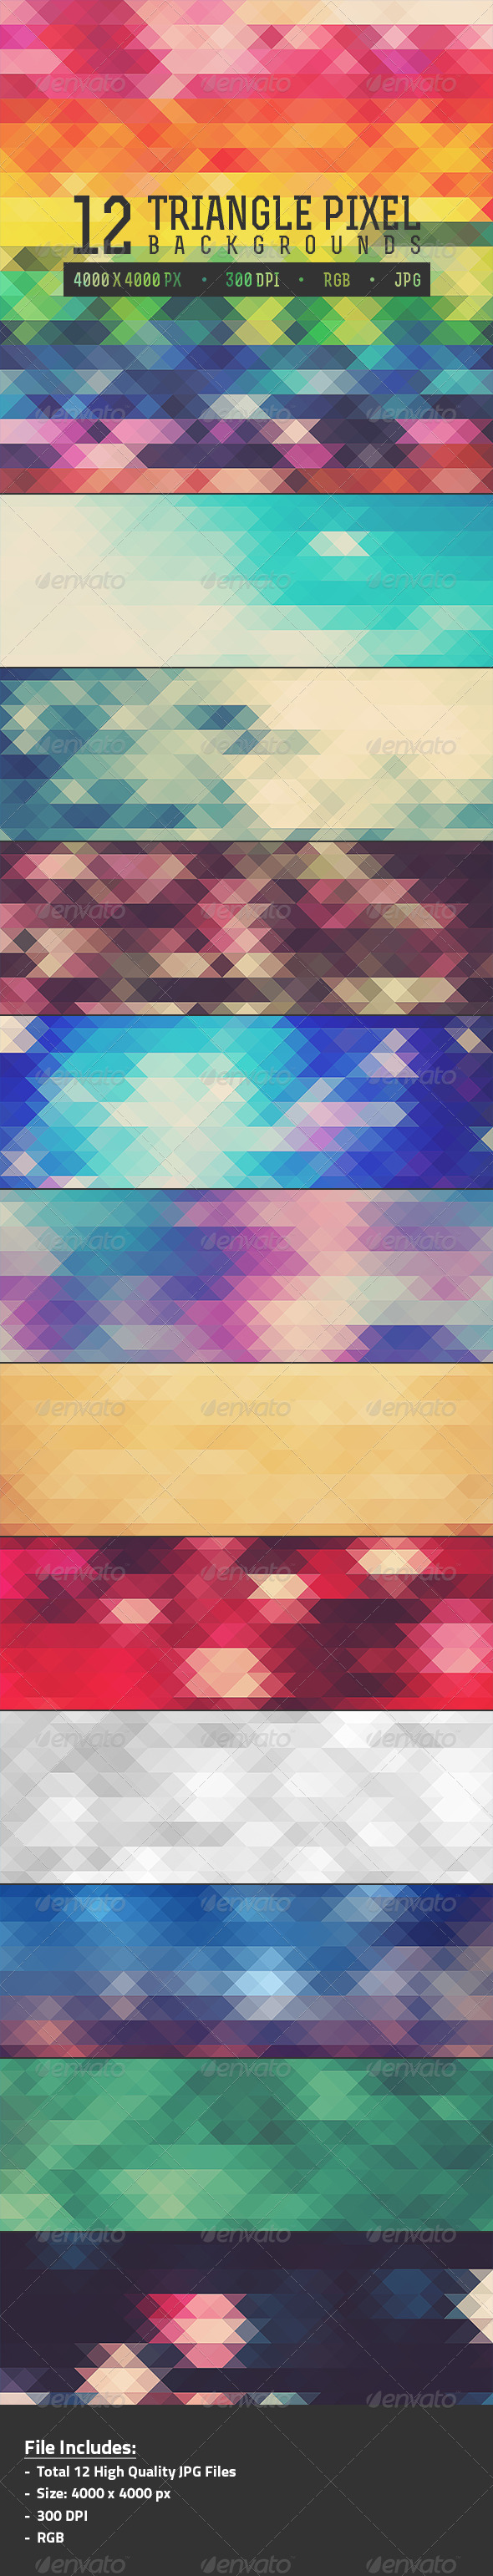 12 Triangle Pixel Backgrounds Pack 1 - Abstract Backgrounds